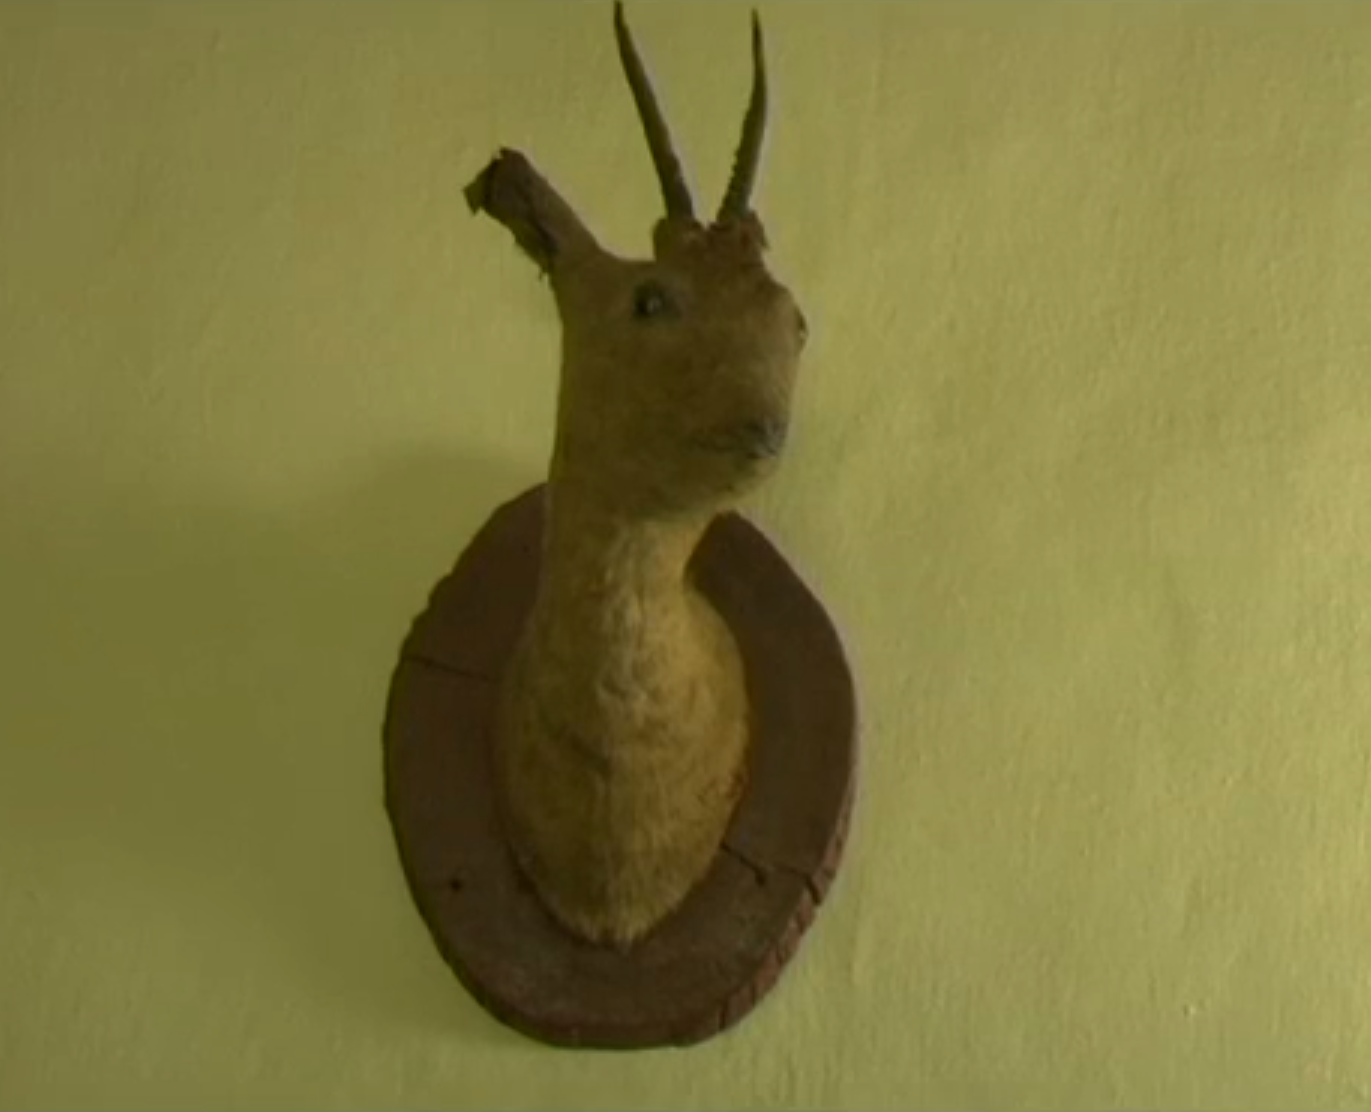 An old deer head mounted on Lysheha's wall in his home. For some reason, I felt a lot of affection for this run-down creature. What a strange beast.